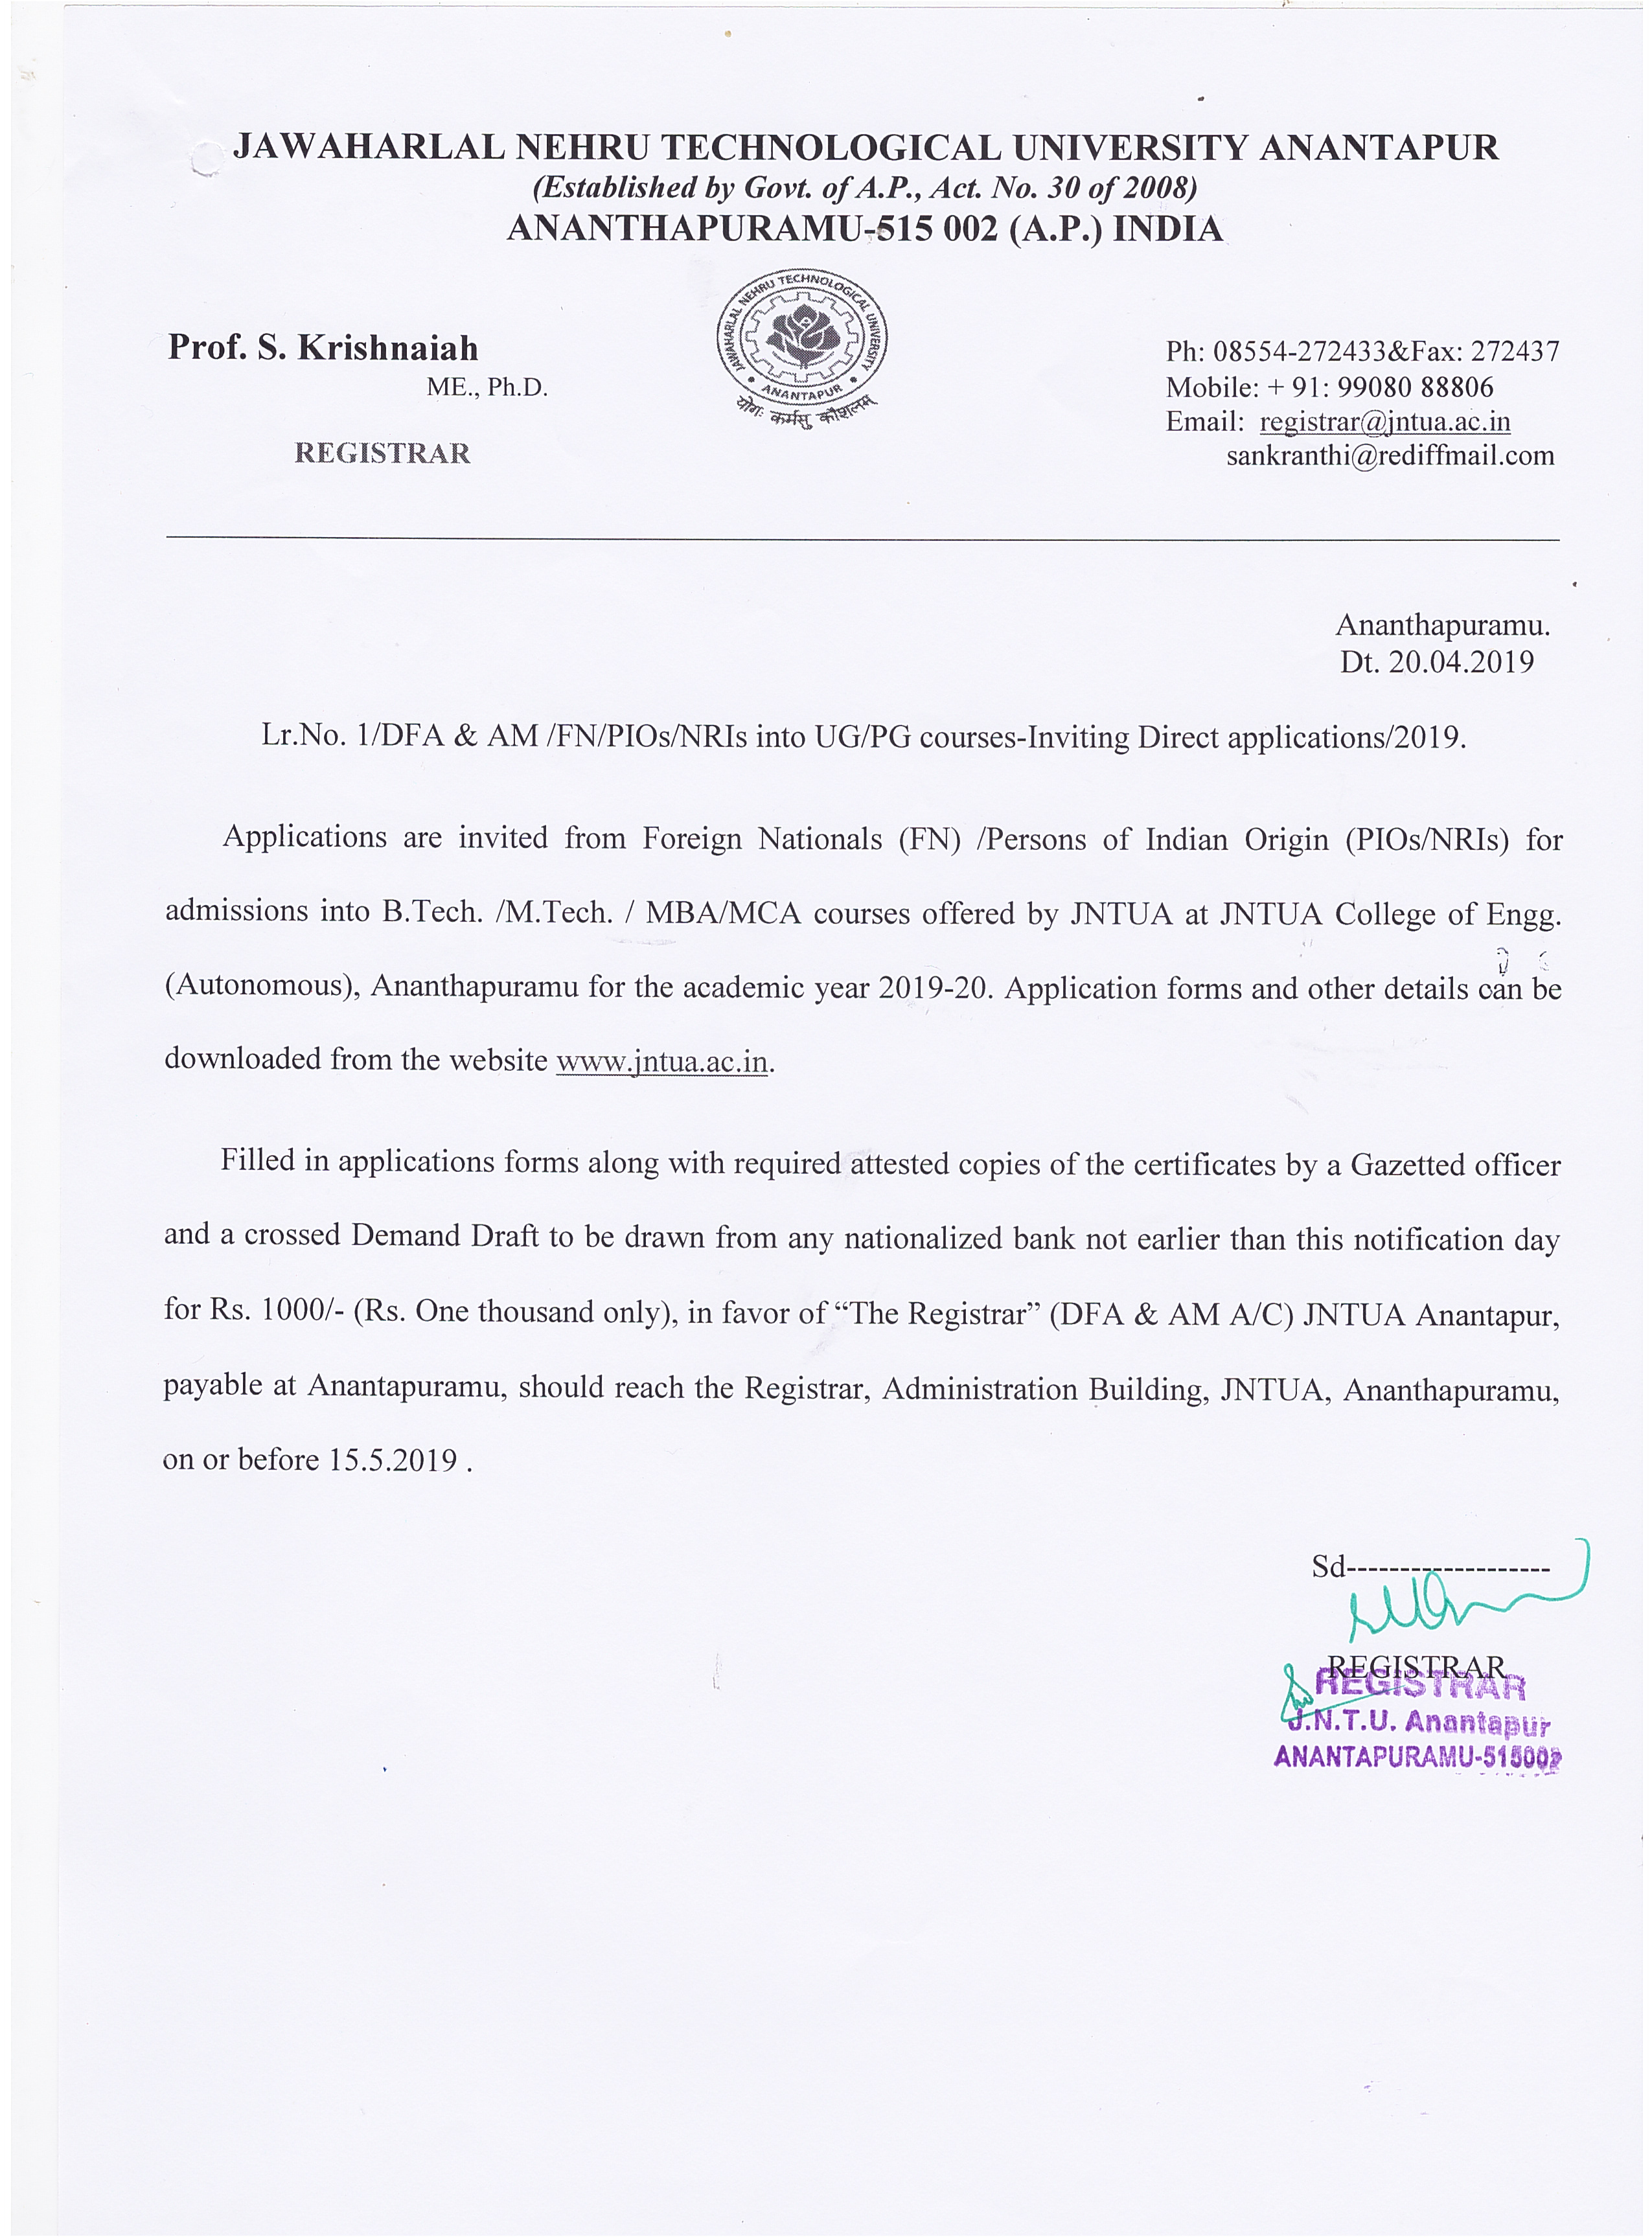 Notification for admission into UG/PG courses under FN/NRI